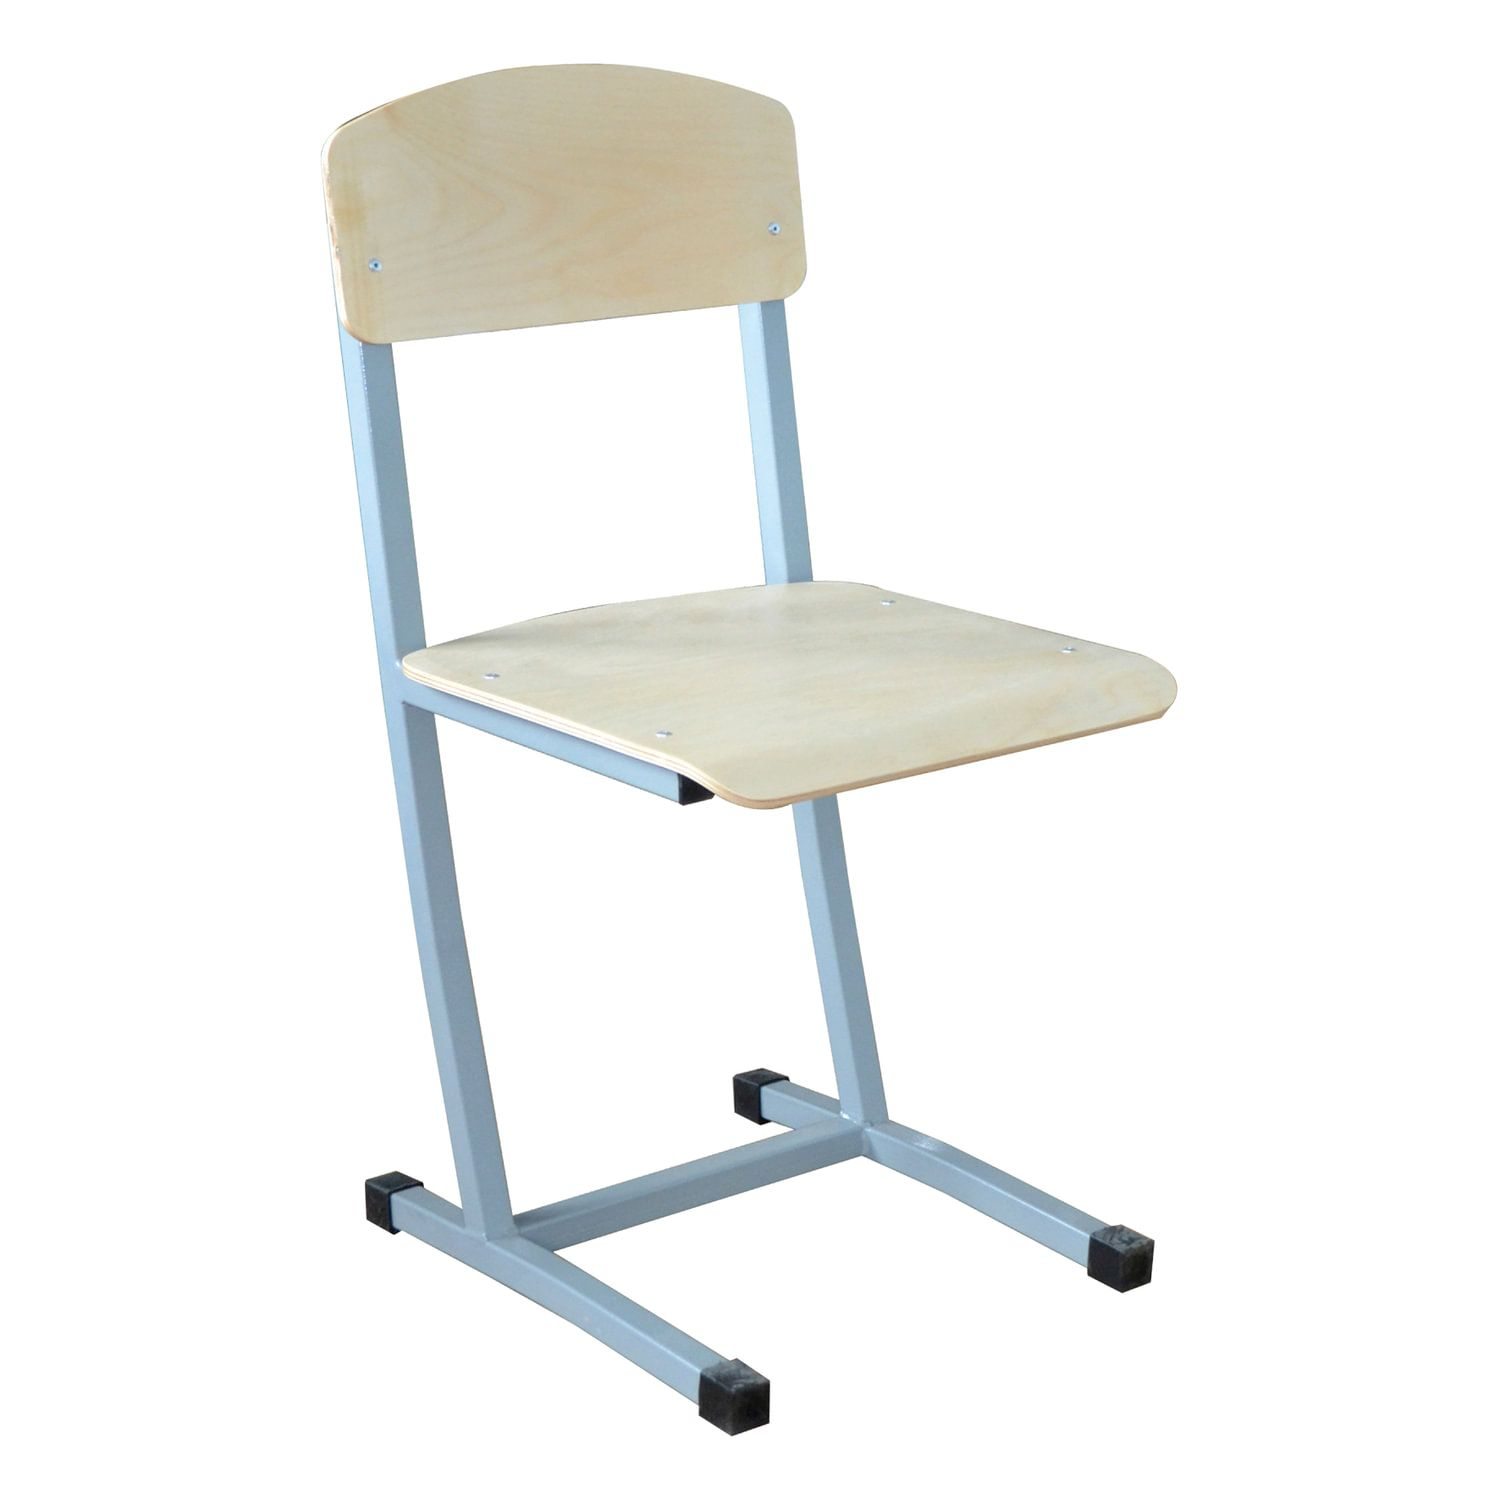 """Chair student unregulated """"Budget"""", 800 x380 x480 mm, height 6, gray frame"""